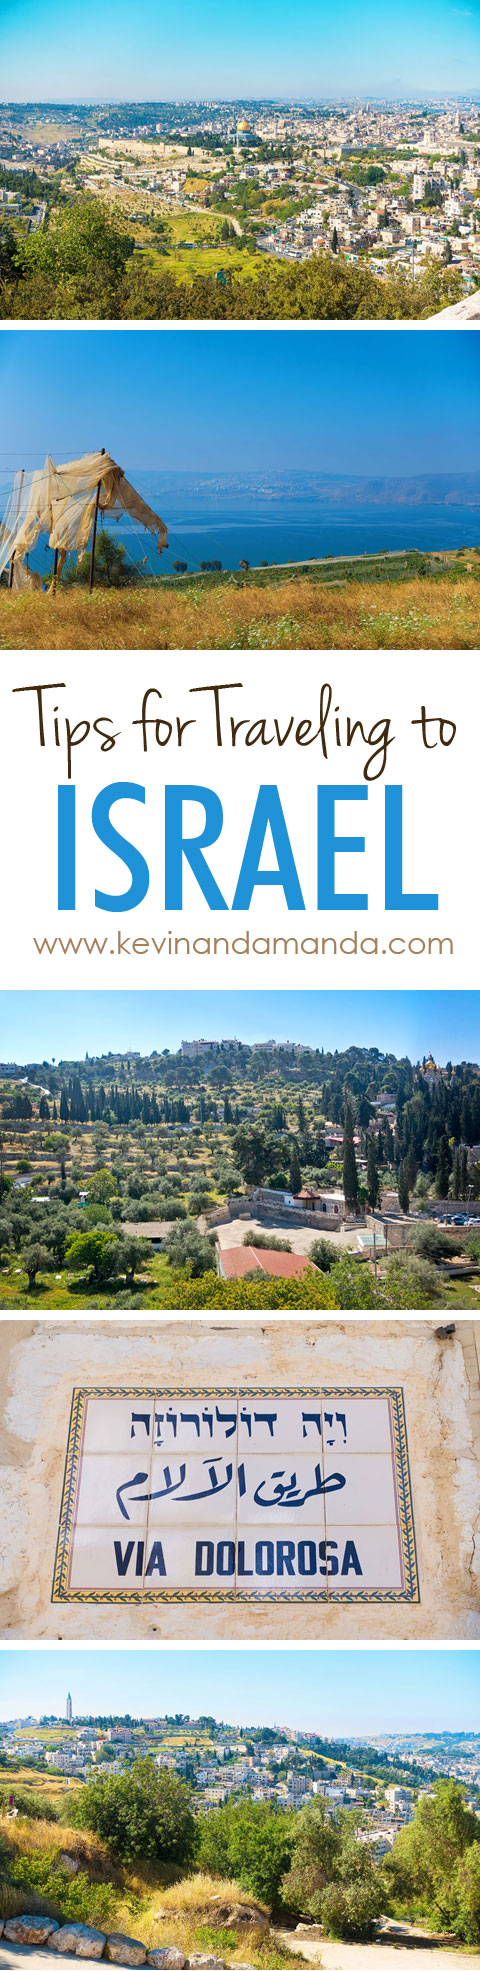 A checklist for the must-see Most Holy Places in Jerusalem, including The Sea of Galilee, the Via Dolorosa, Mount of Olives, Garden of Gethsemane, Church of the Holy Sepulcher. Tips for Traveling to Israel + Where to Eat and Where to Stay in Jerusalem.